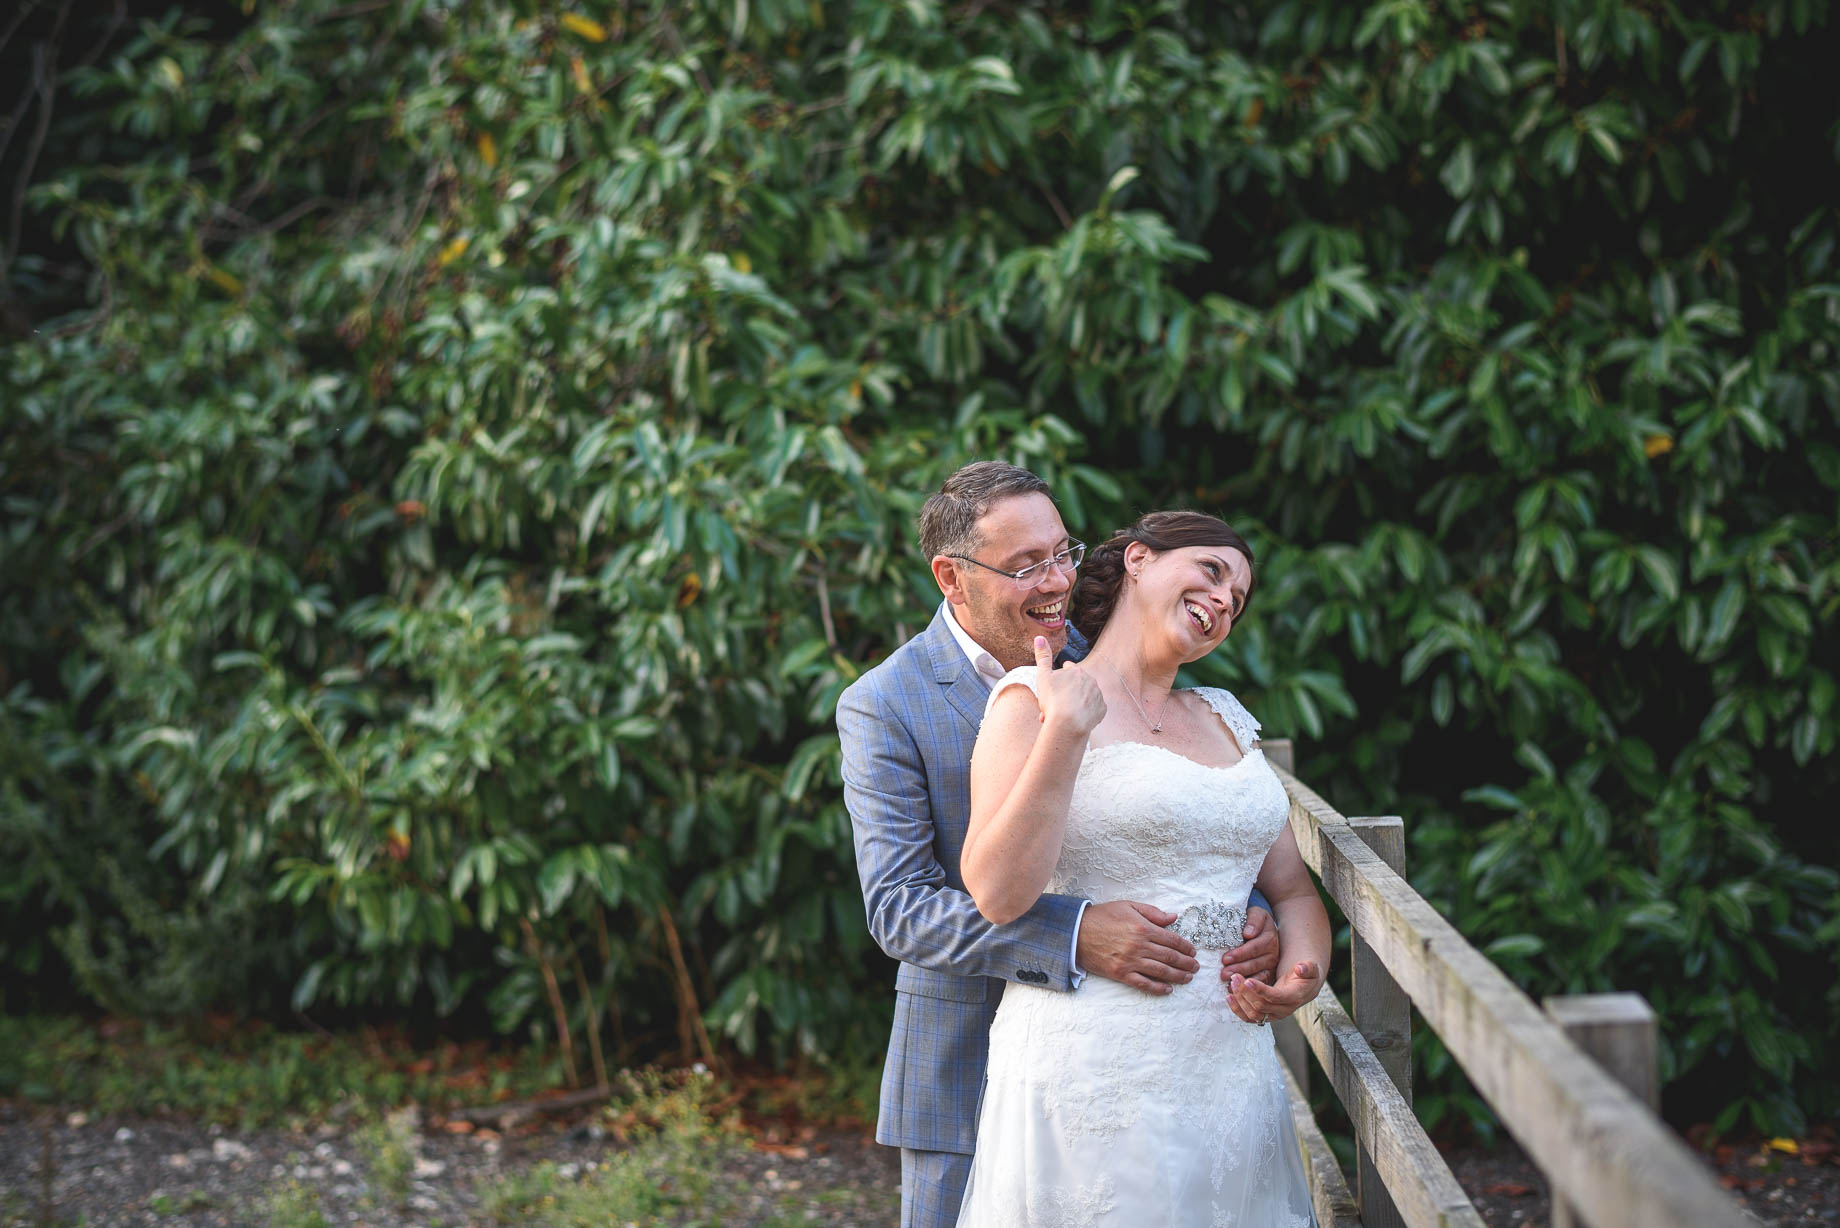 Luton Hoo wedding photography by Guy Collier Photography - Lauren and Gem (154 of 178)